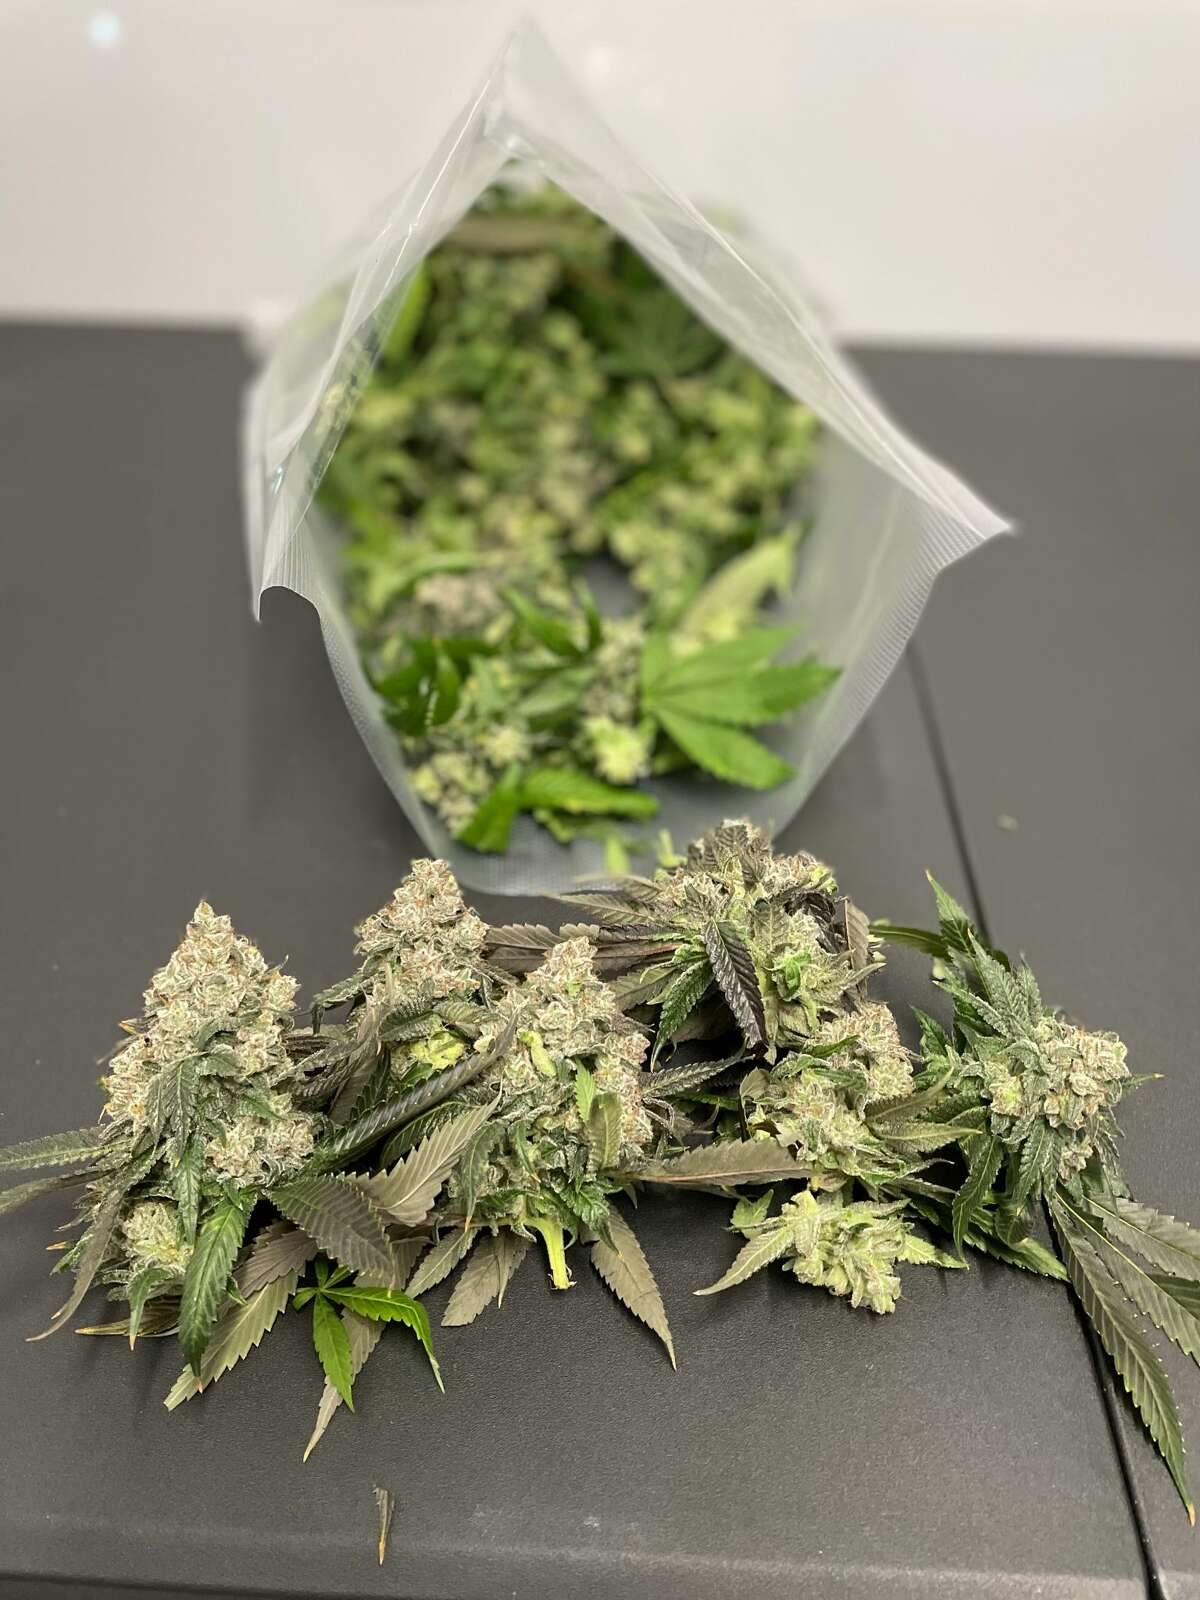 The WellFlower will offer multiple cannabis products for adult-use at its Manistee location. (Courtesy photo)